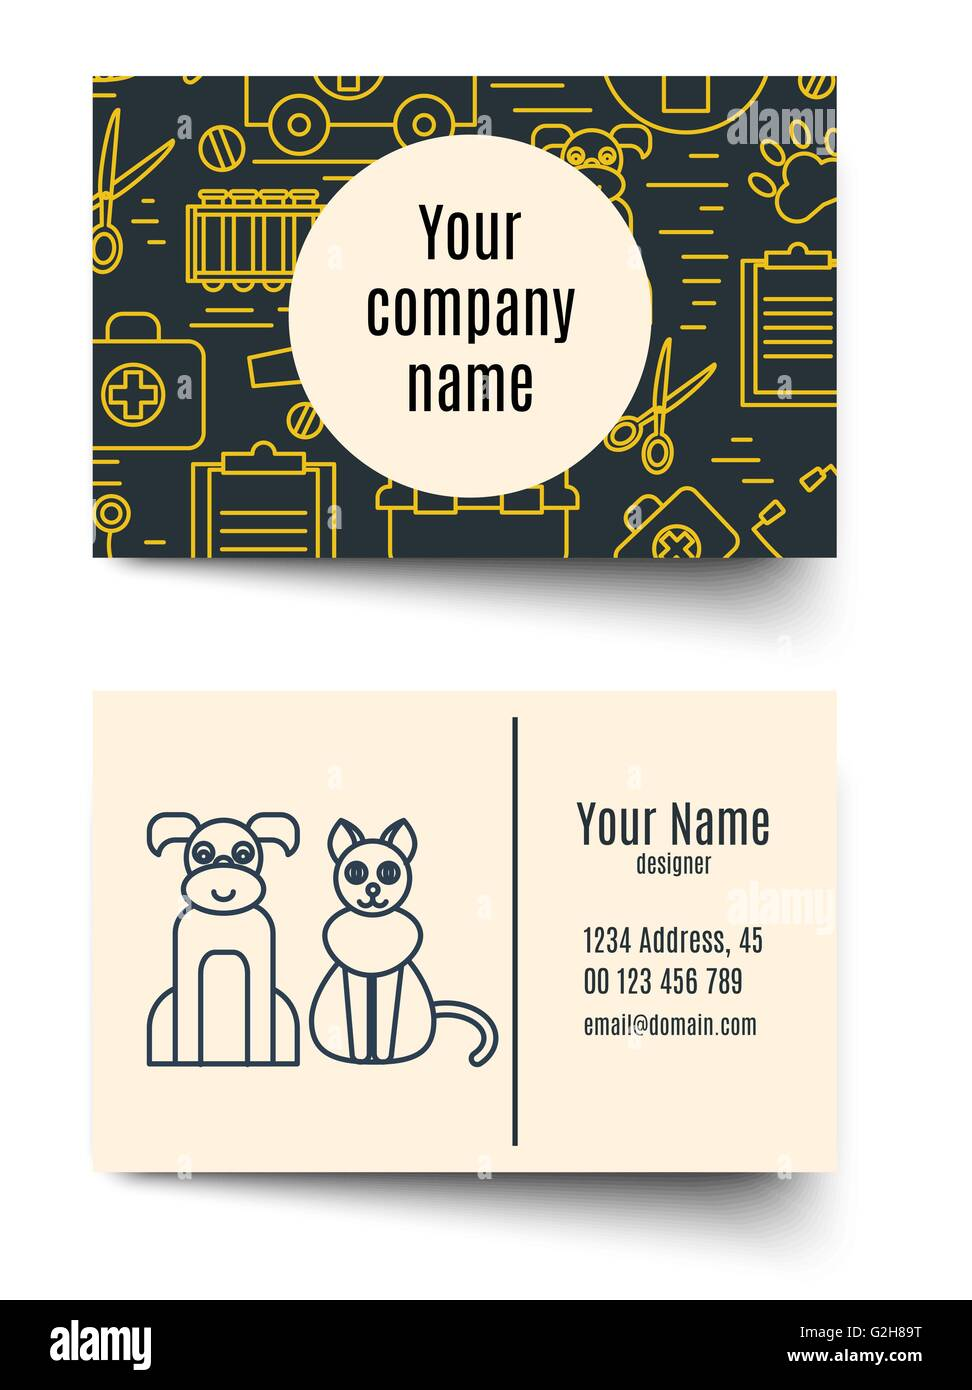 Veterinary pet health care animal medicine business card Stock ...